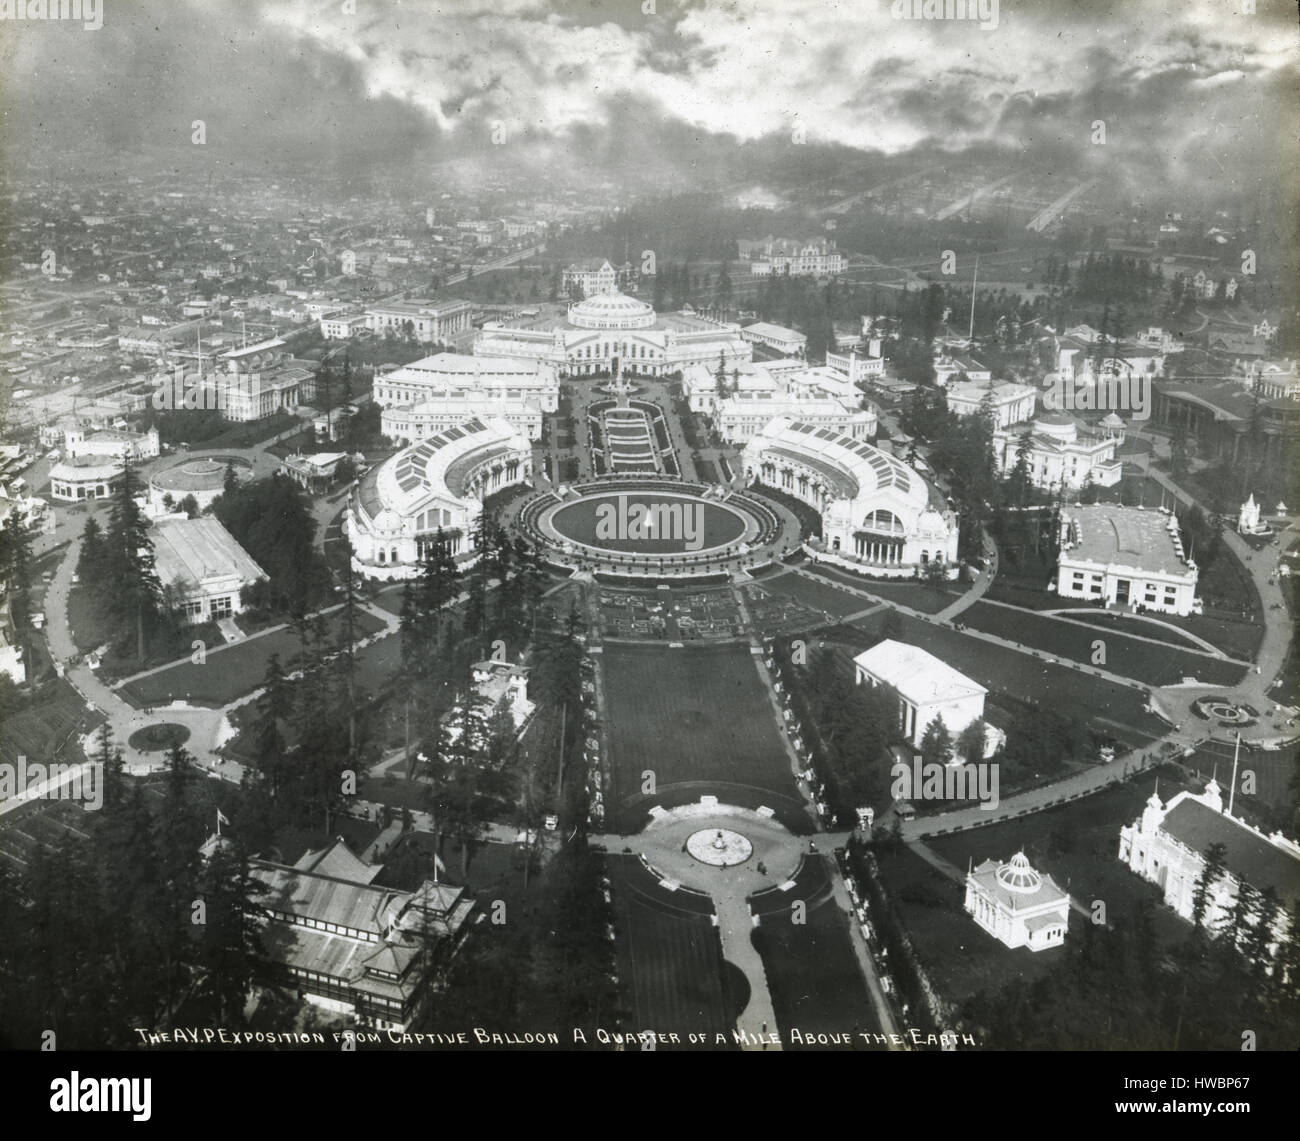 Antique 1909 photograph, 'The AYP Exposition from the Captive Balloon a Quarter of a Mile Above the Earth.' - Stock Image